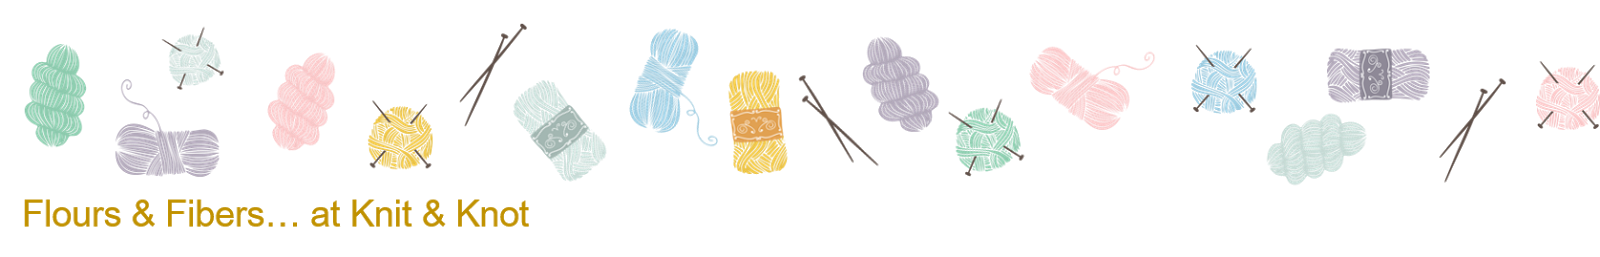 <center>Flours &amp; Fibers at Knit &amp; Knot</center>